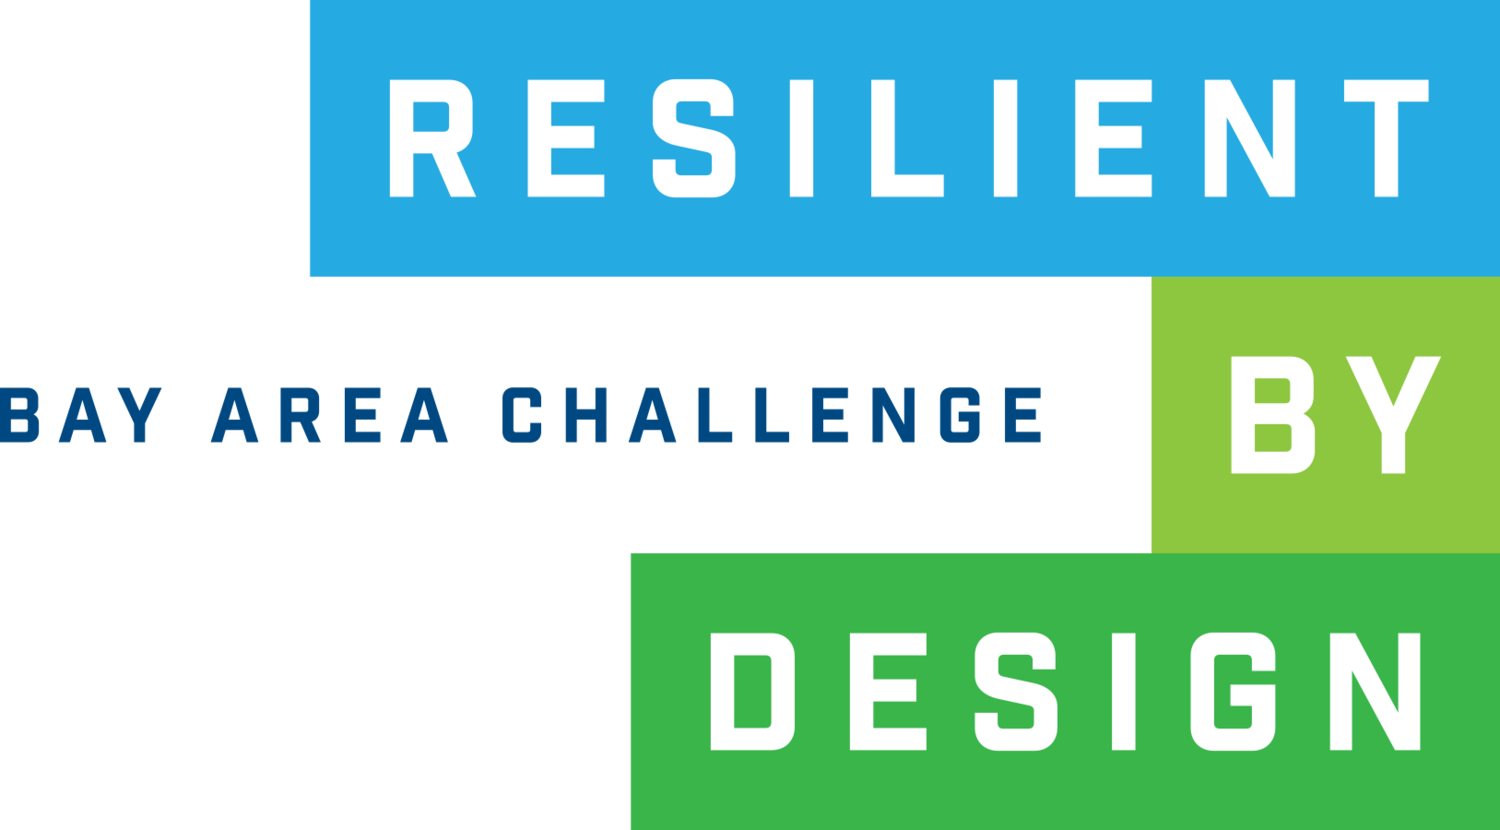 resilientbydesign image